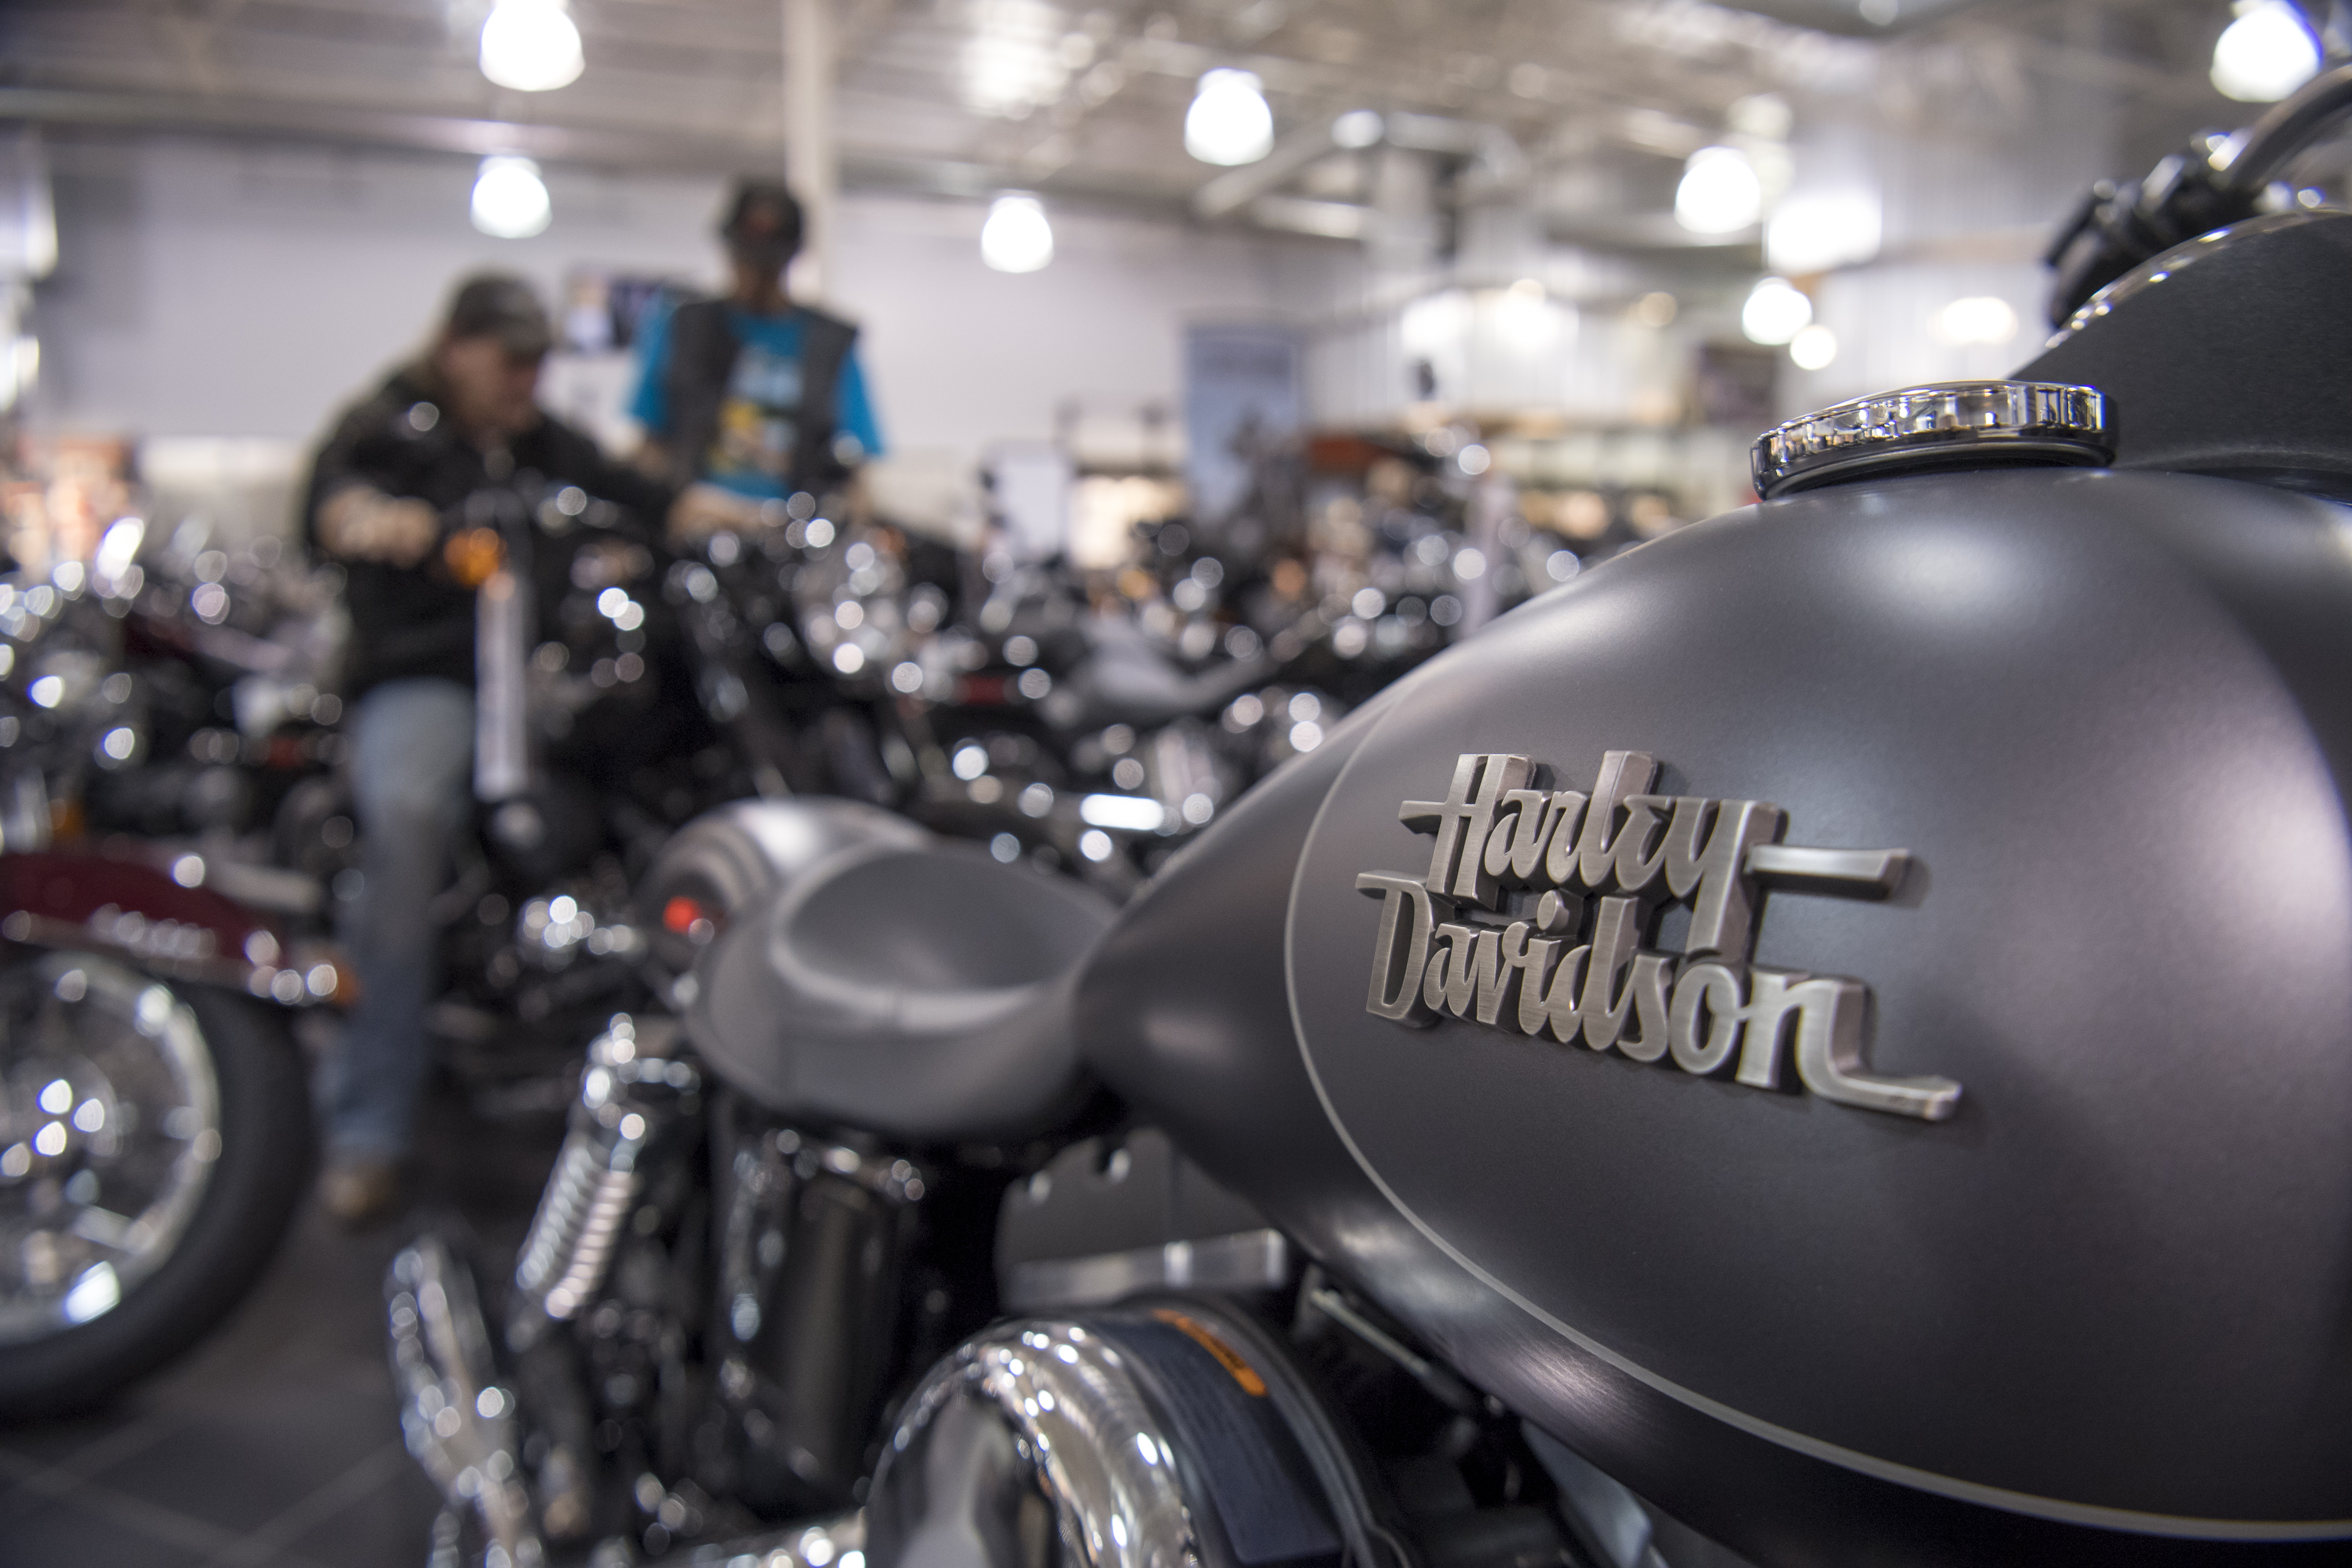 Inside A Harley-Davidson Inc. Store Ahead Of Earnings Figures